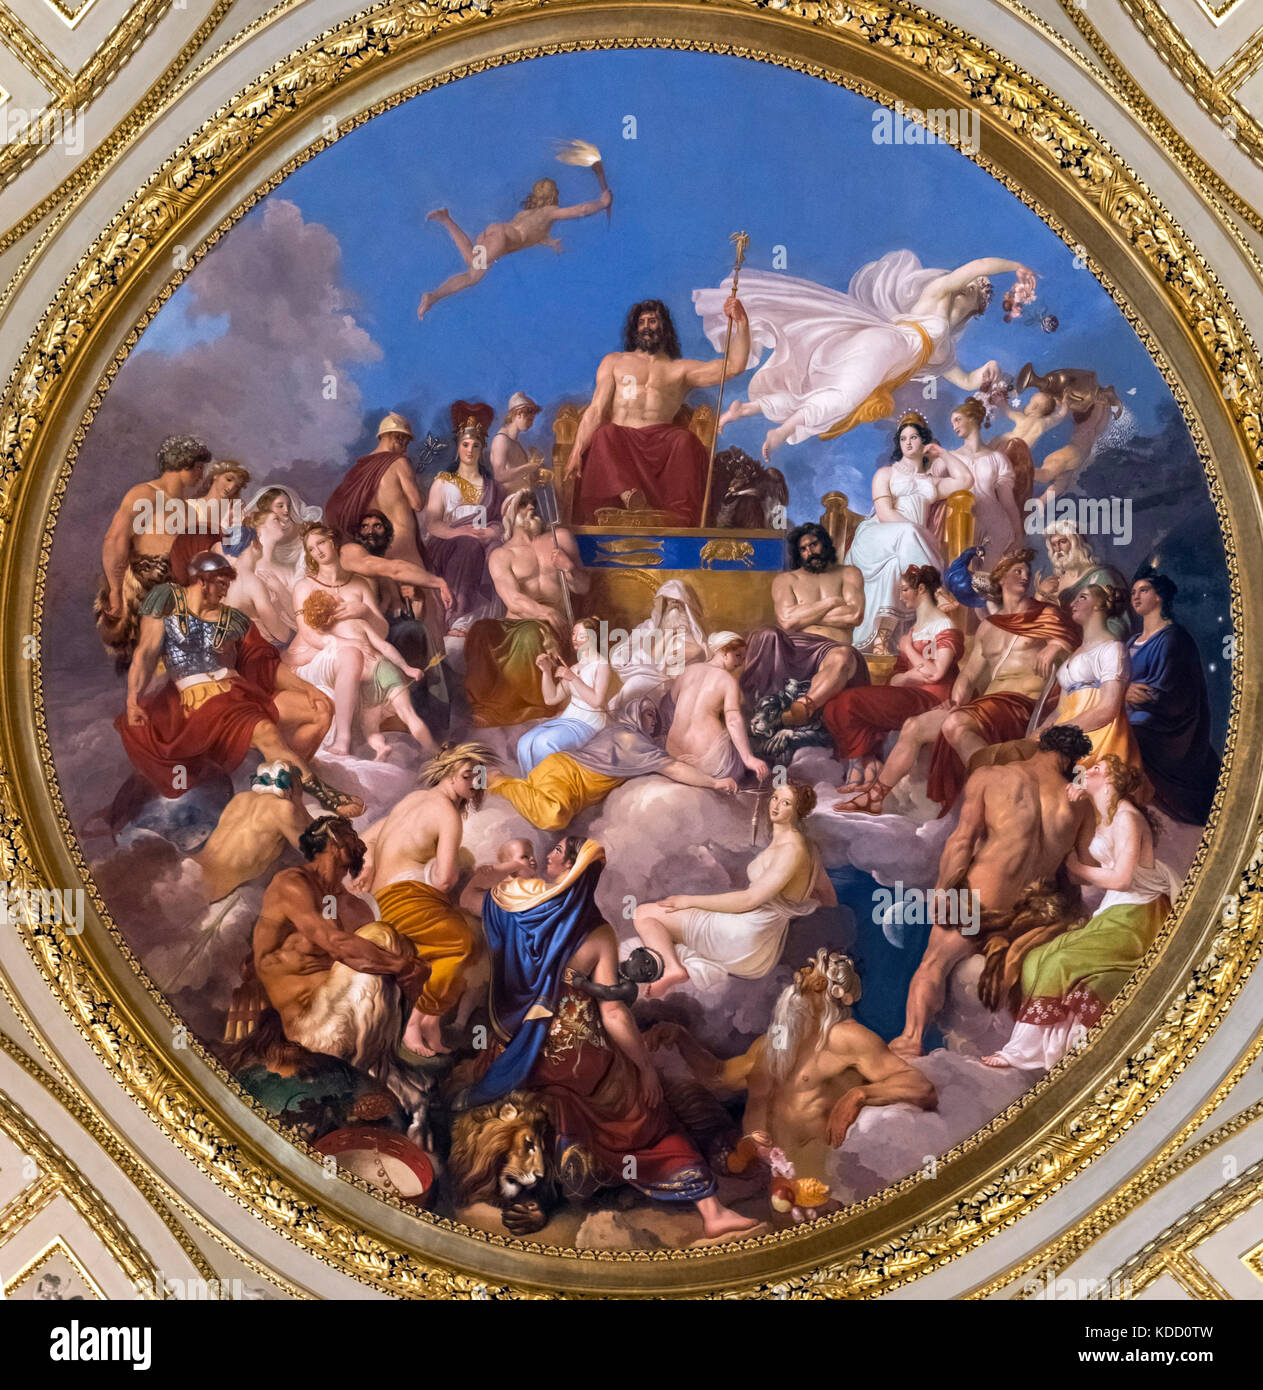 Assembly of the Gods presided over by Jupiter, painting on the ceiling of the Iliad Room, Palatine Gallery, Palazzo - Stock Image